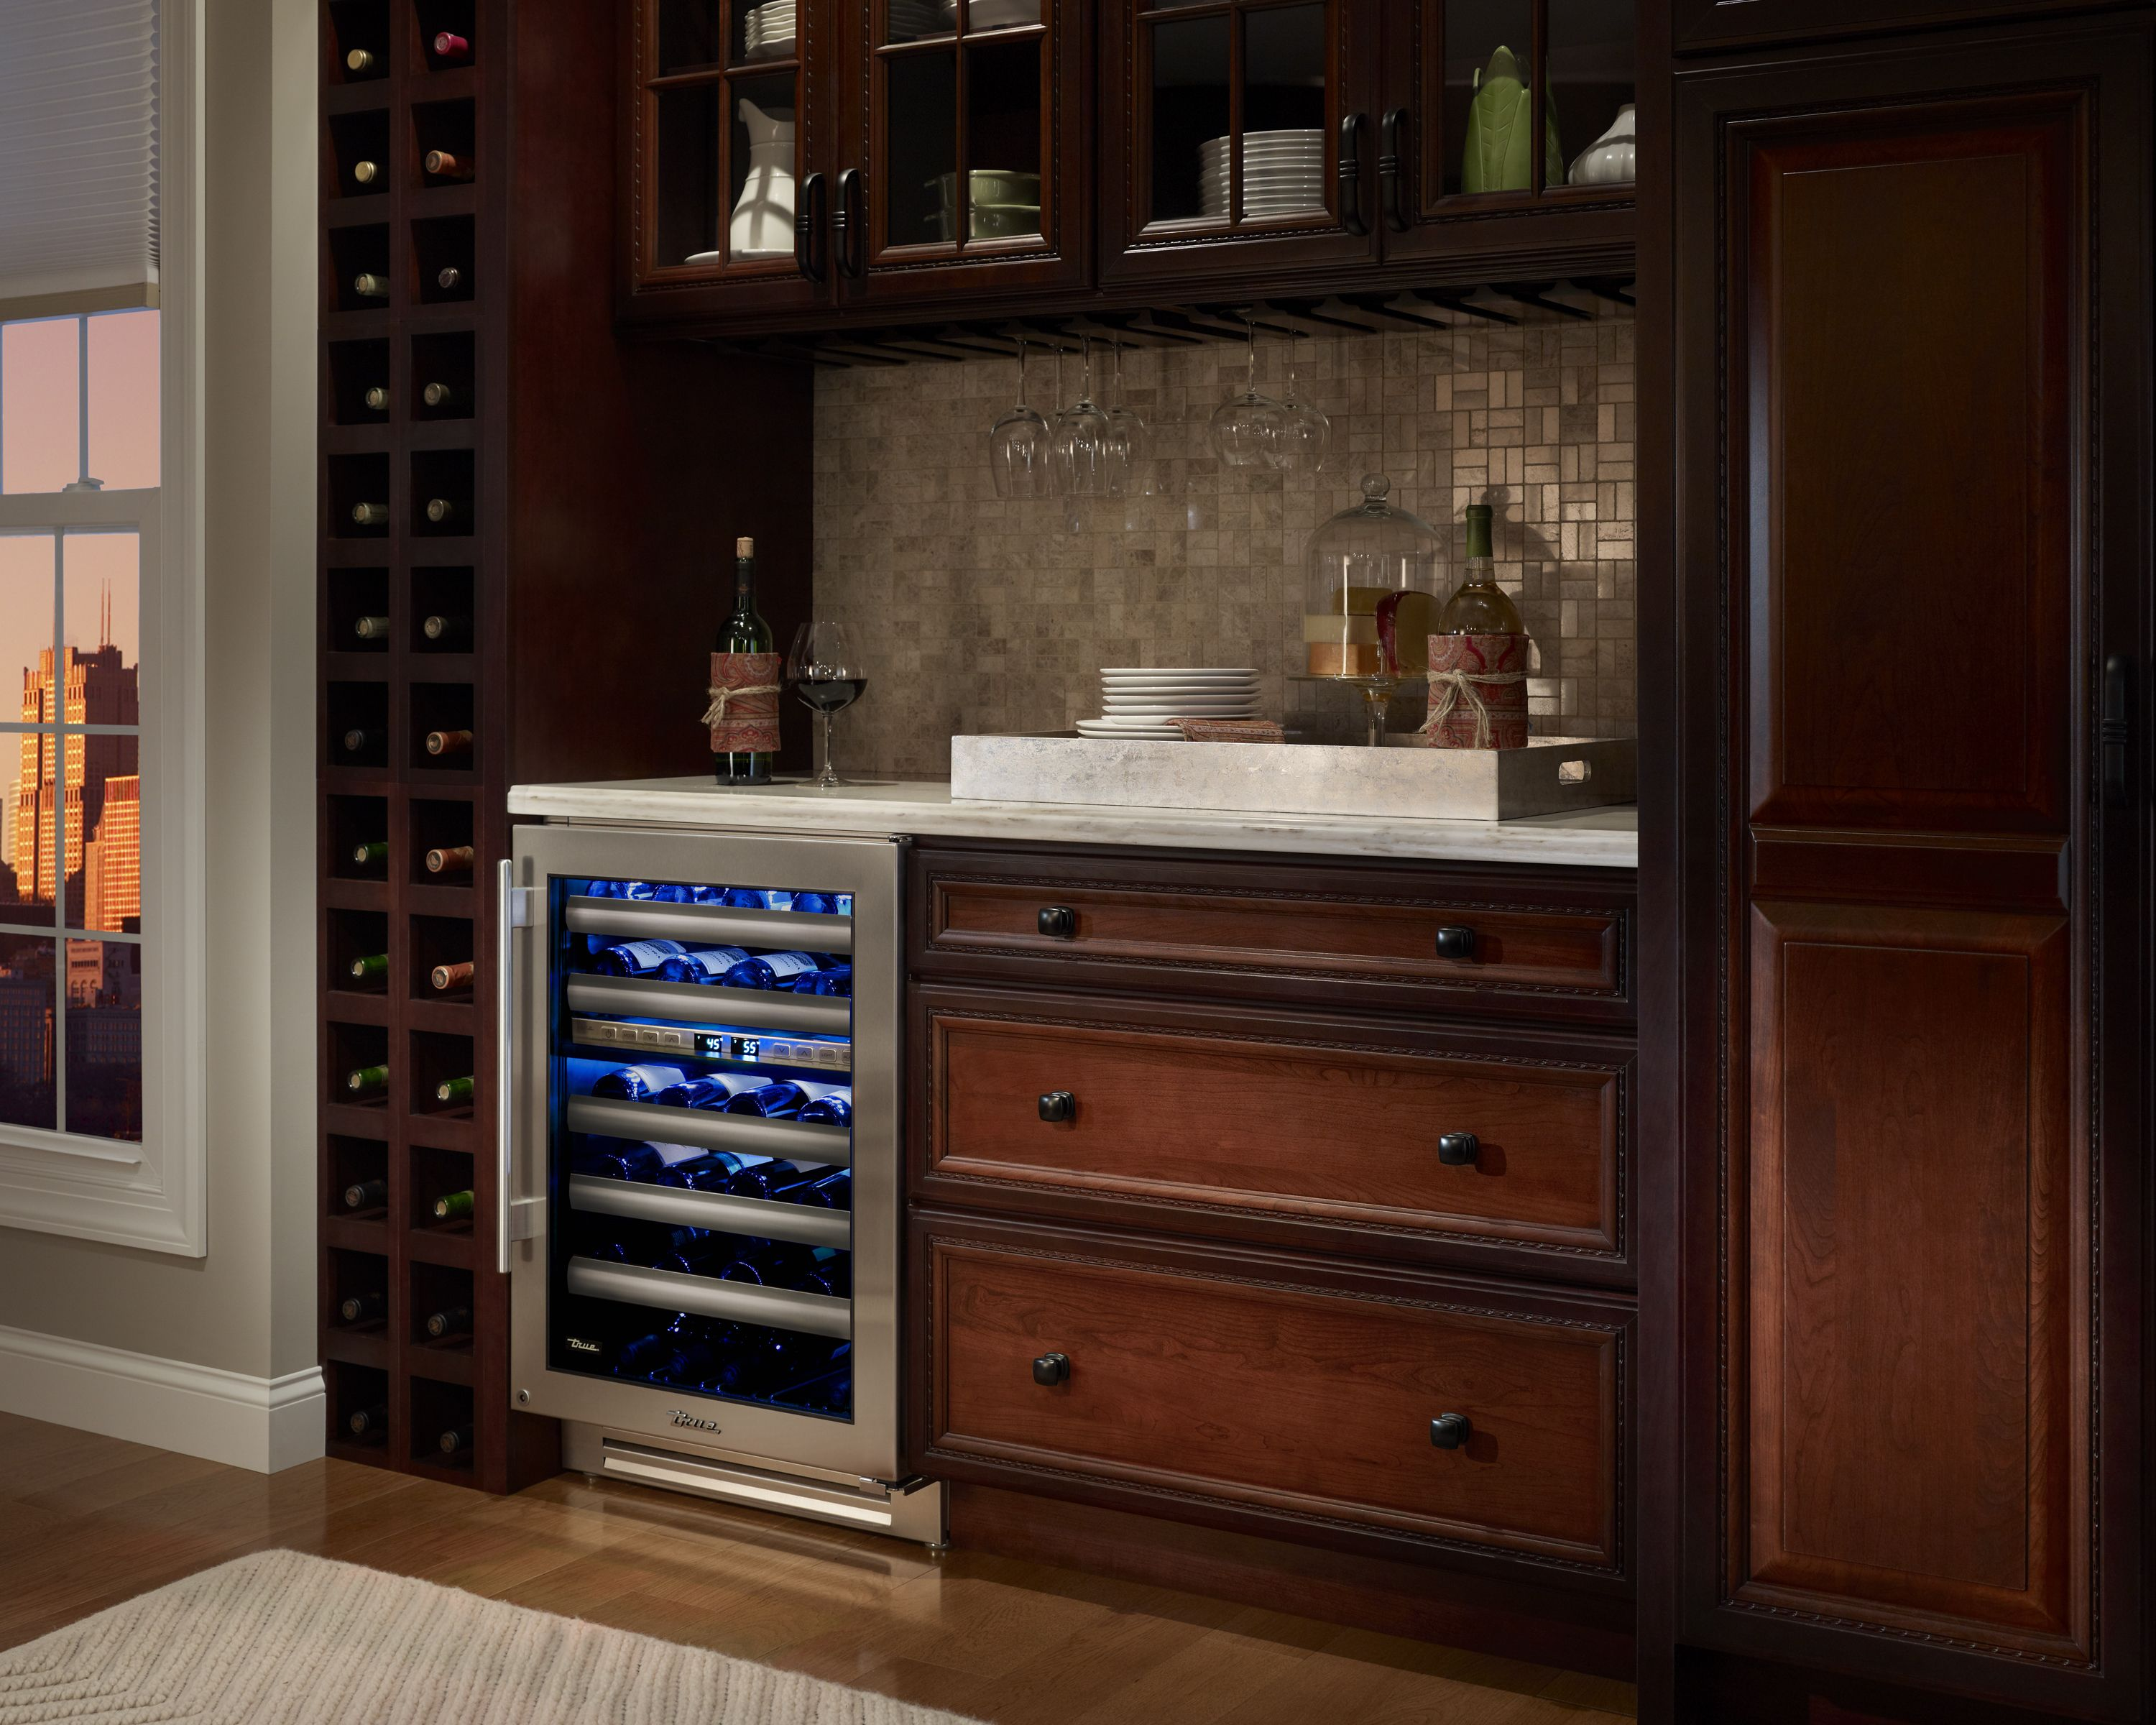 com appliances dp cabinet amazon cooler newair refrigerated bottle wine aw thermoelectric